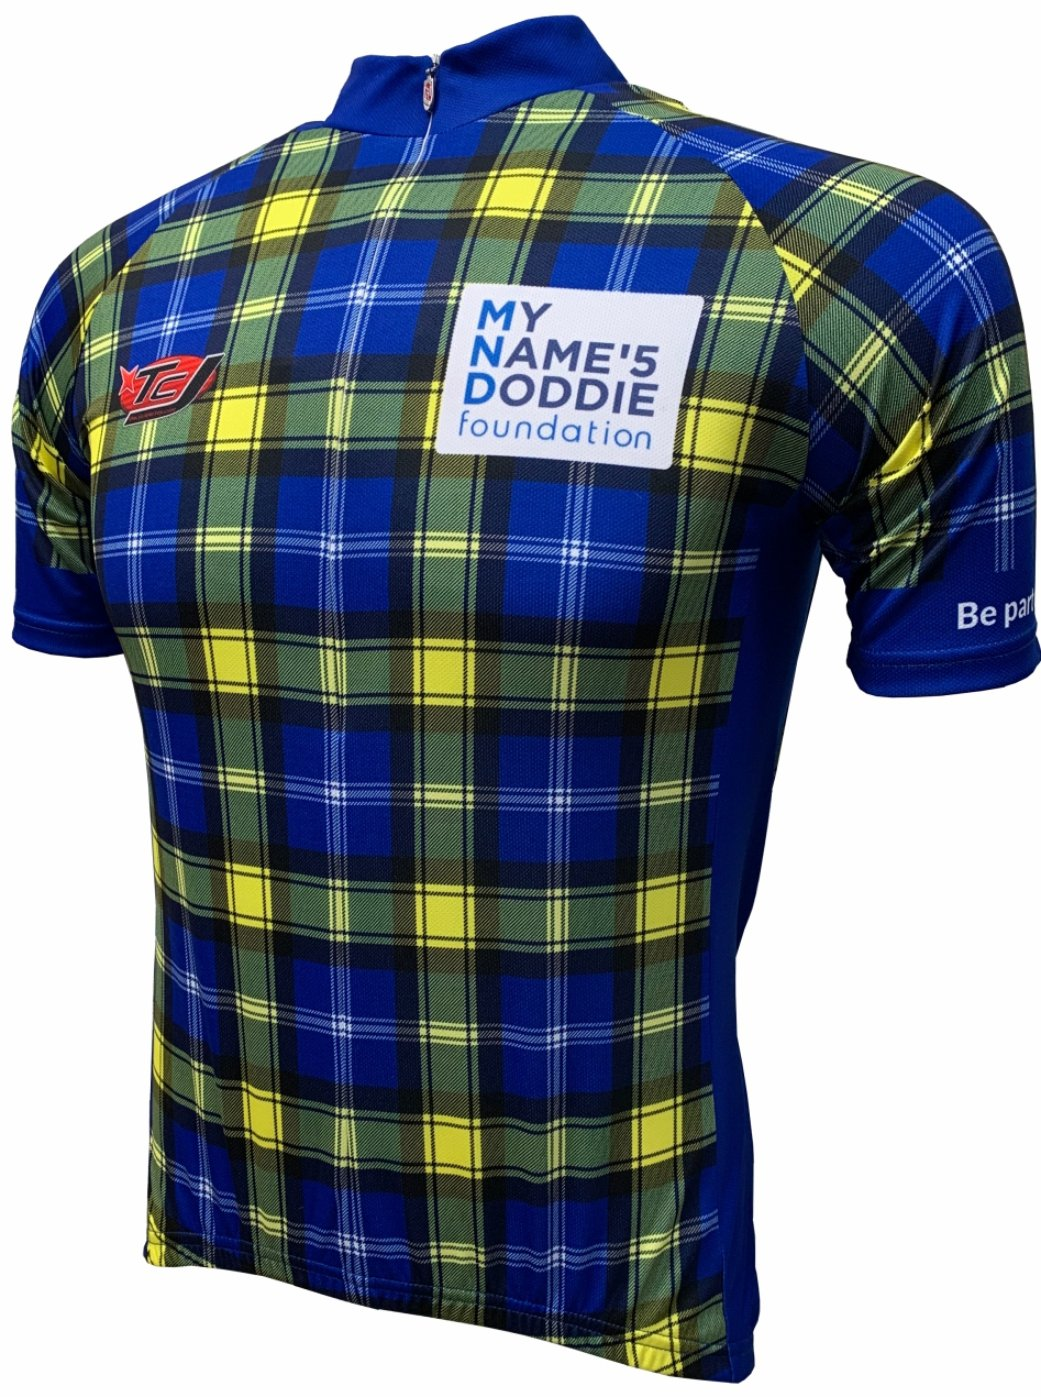 Doddie'5 Tartan Cycling Jersey Front